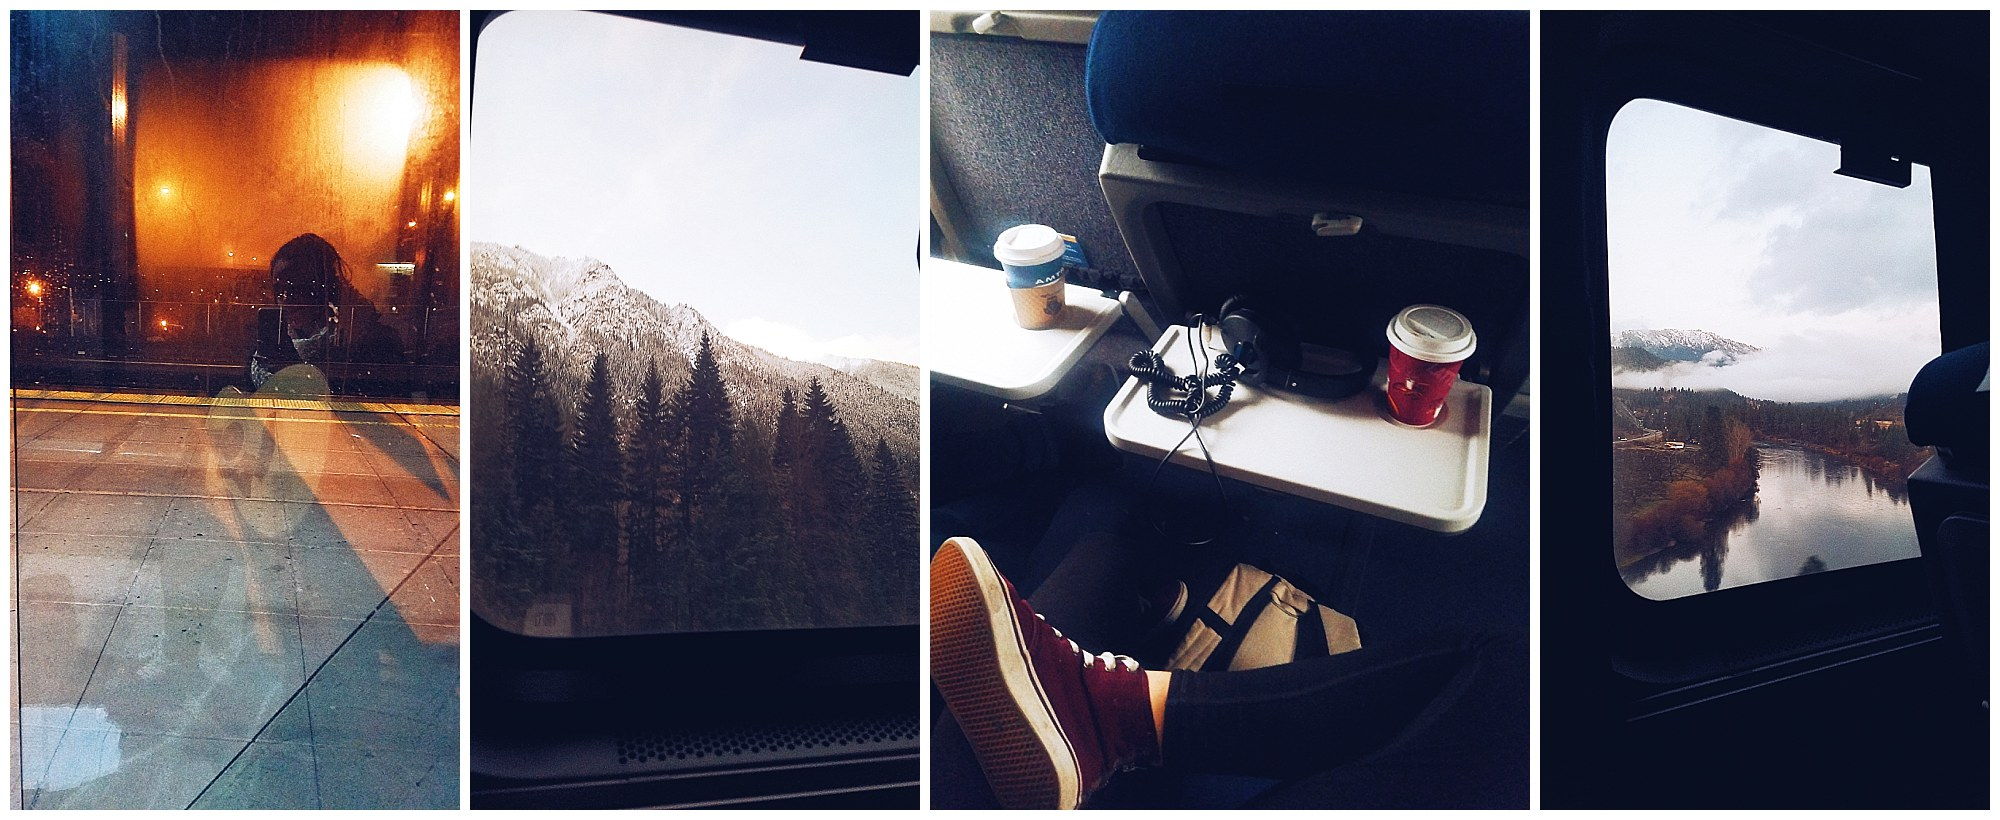 **photos taken on train journey from Wenatchee to Seattle -- a peaceful return to something new at the end of my two week vacation.